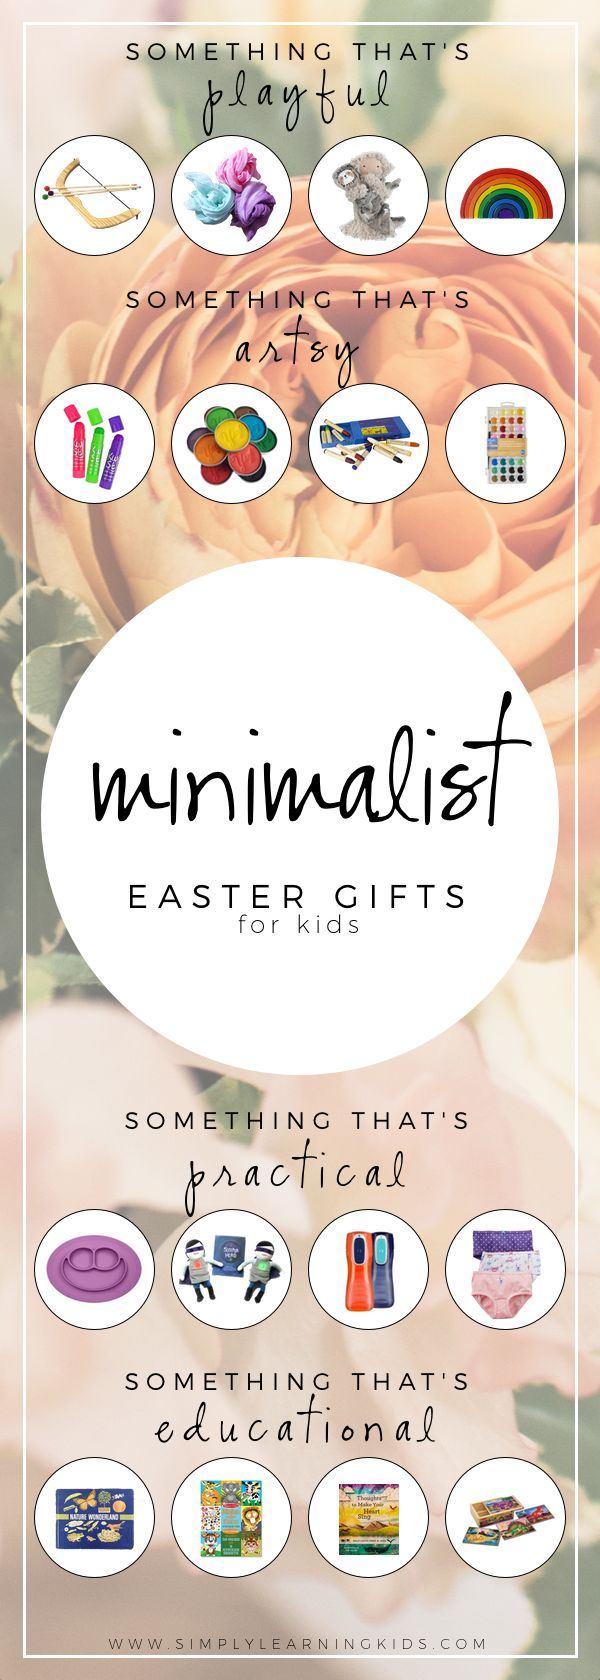 Since our family decided toembrace minimalismlast year, I've really pushed myself to come up with meaningful gifts for every holiday. We don't want to accumulate more junk or unnecessary stuff, so this monthI've found creative gift ideas for Easter. I chose to focus on 4 categories that I felt would encompass things that the girls could actually use and would... Read More